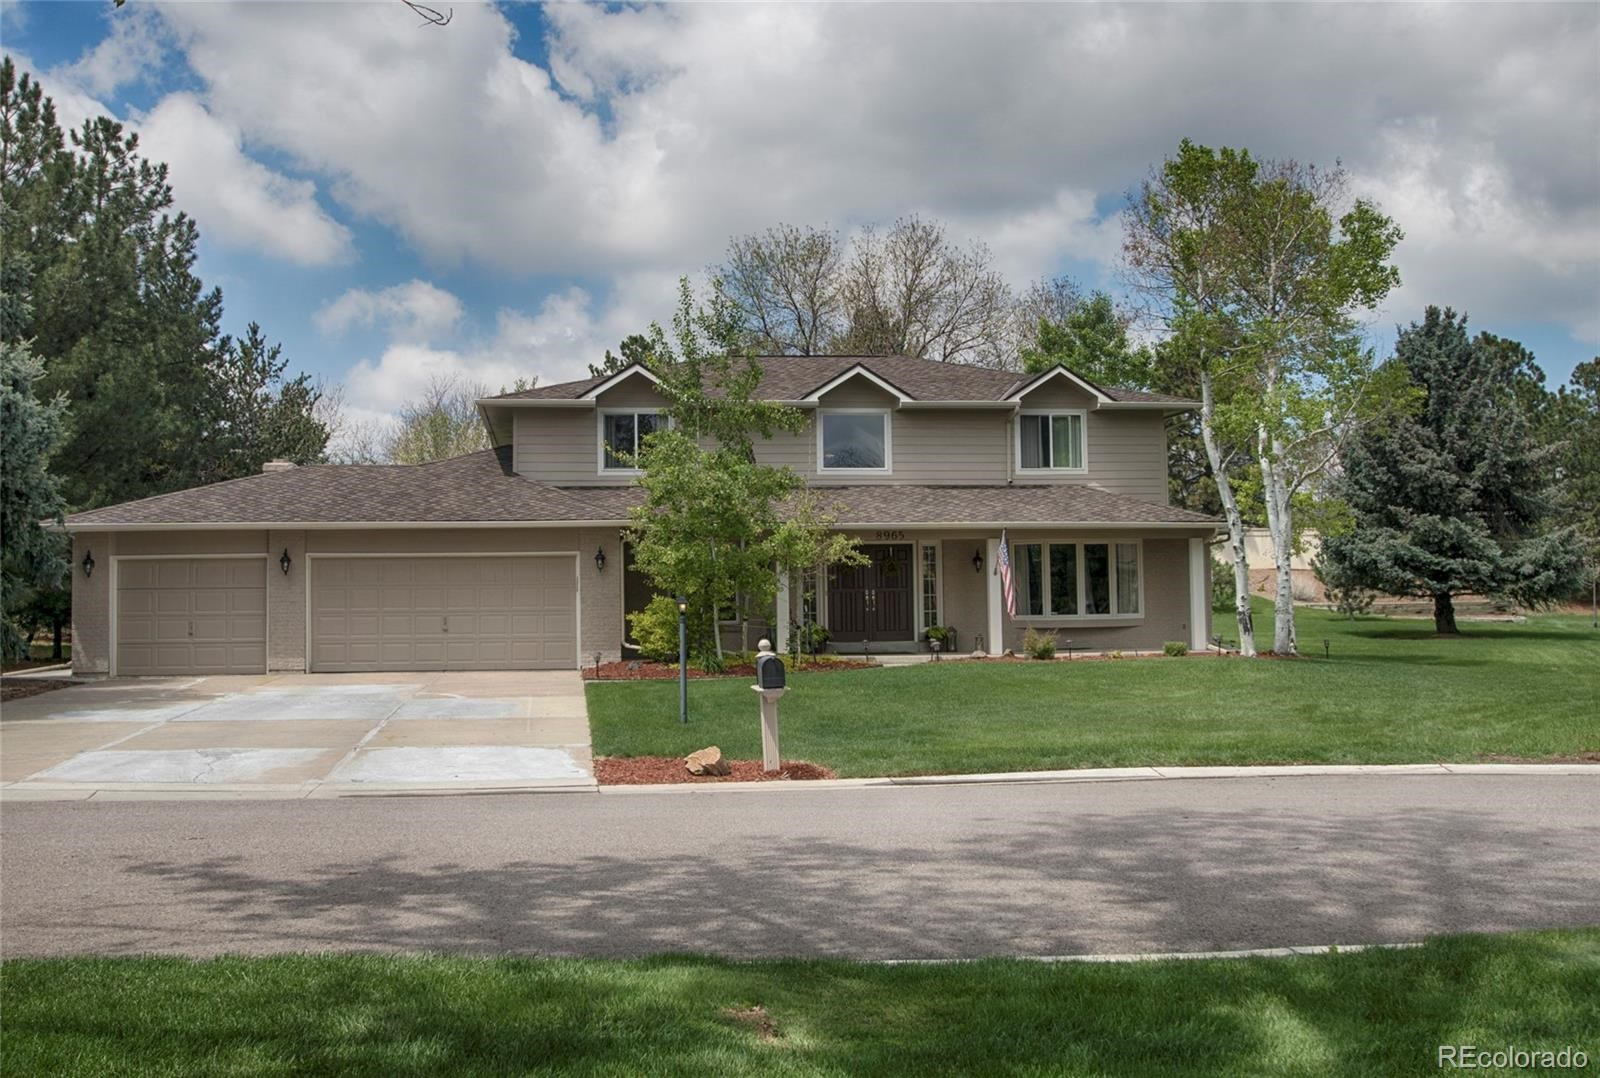 MLS# 7249477 - 1 - 8965 Big Canon Place, Greenwood Village, CO 80111